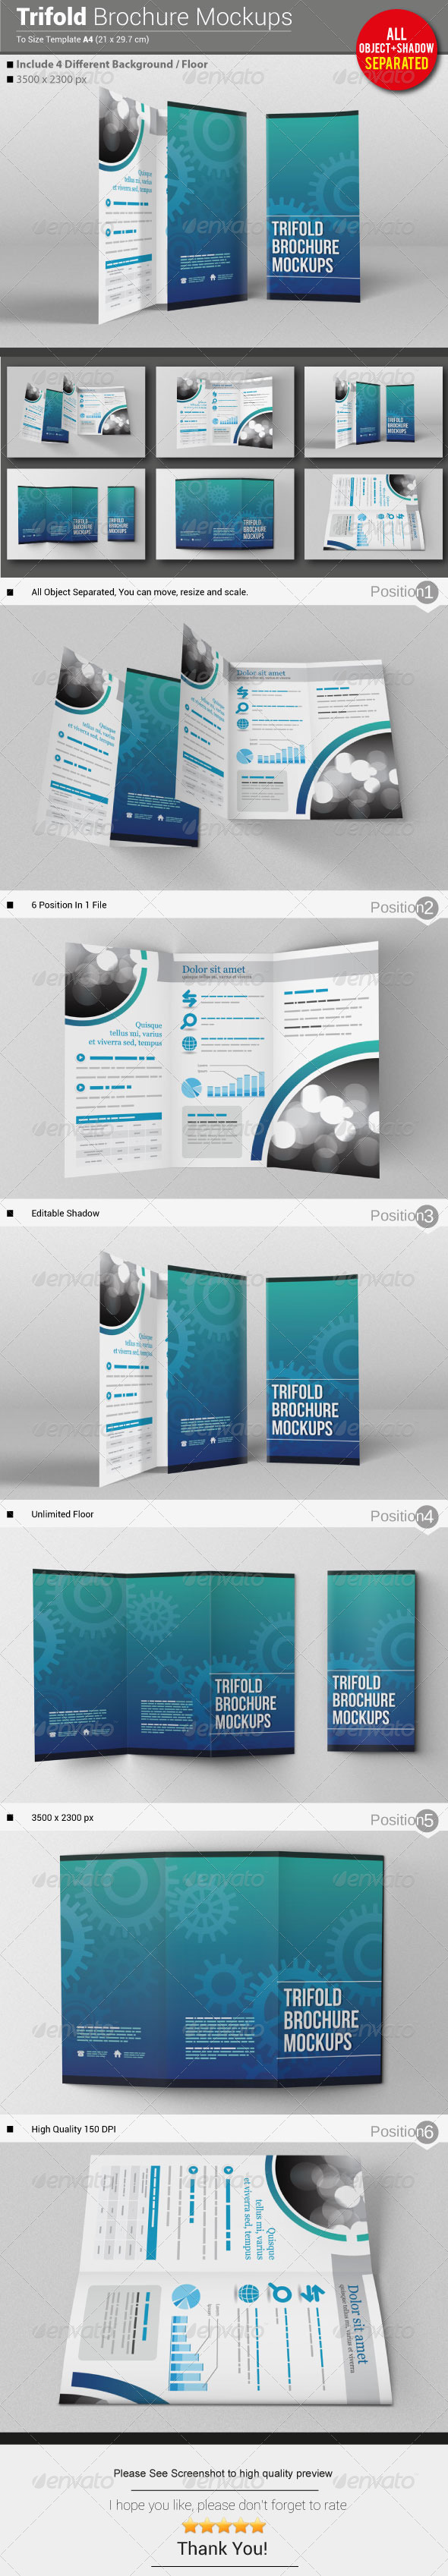 GraphicRiver Trifold Brochure Mockups 5694180